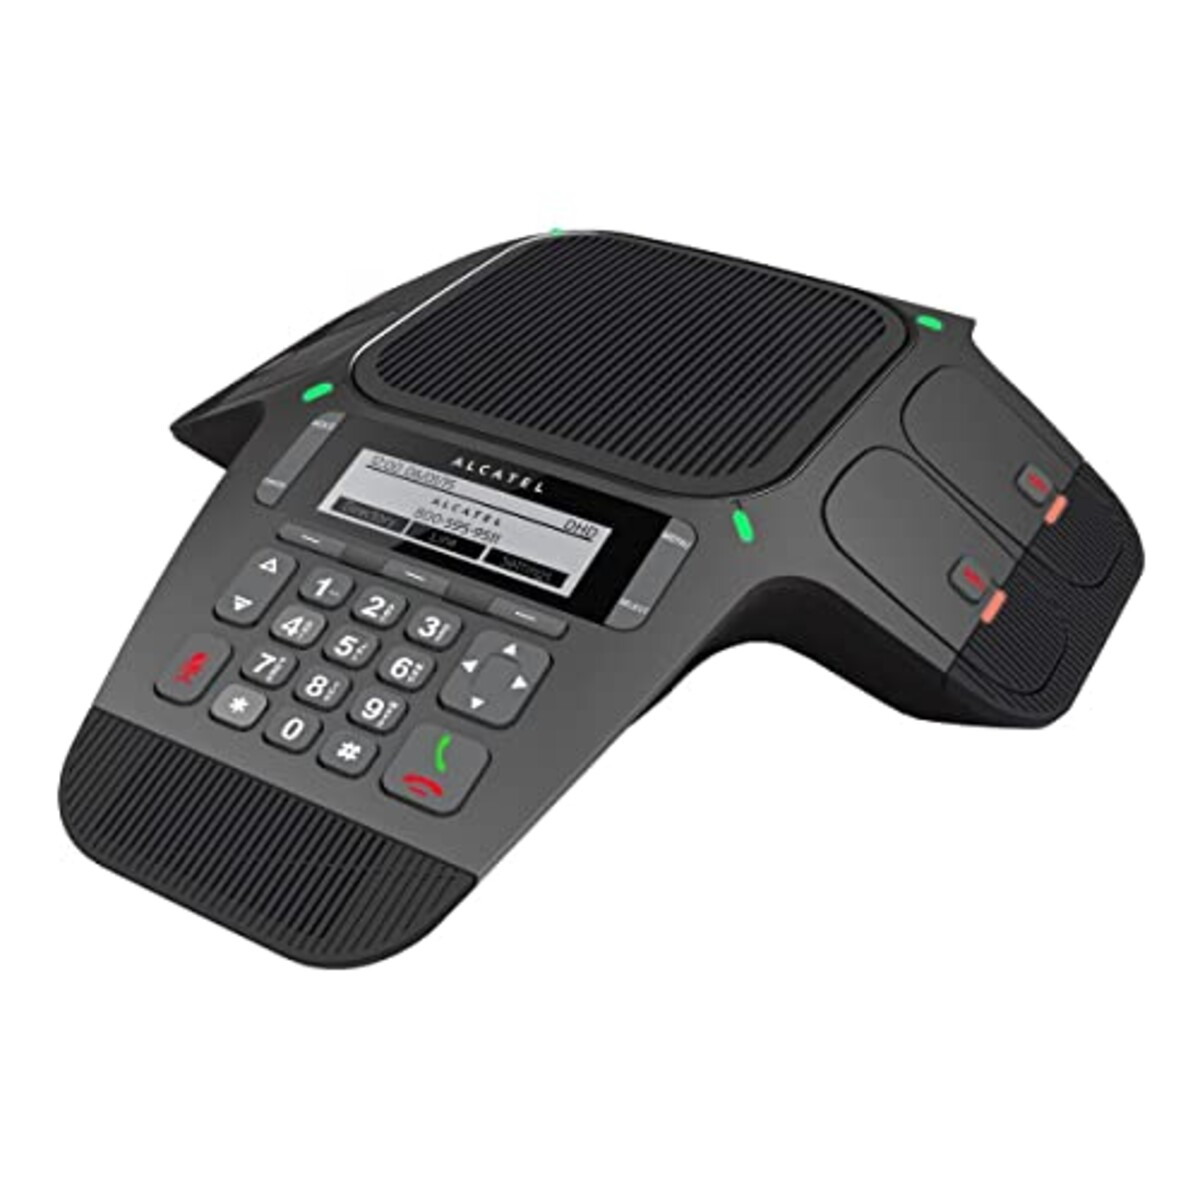 3700601412833-alcatel-telefono-ip-alcatel-conference-ip1850-ce-nero